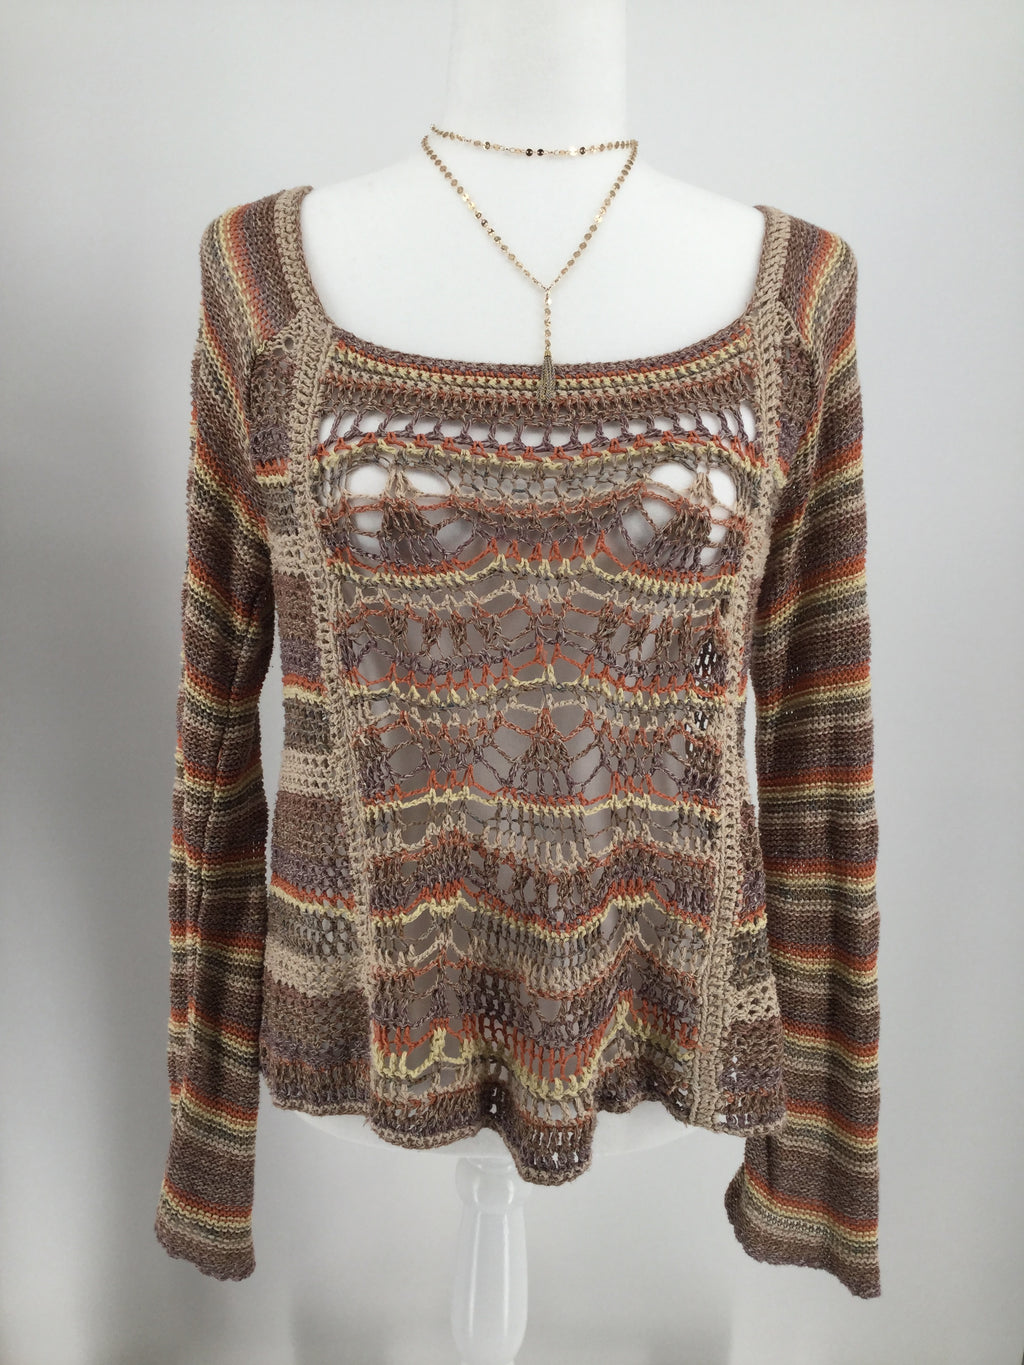 FREE PEOPLE TOP LS SIZE:M